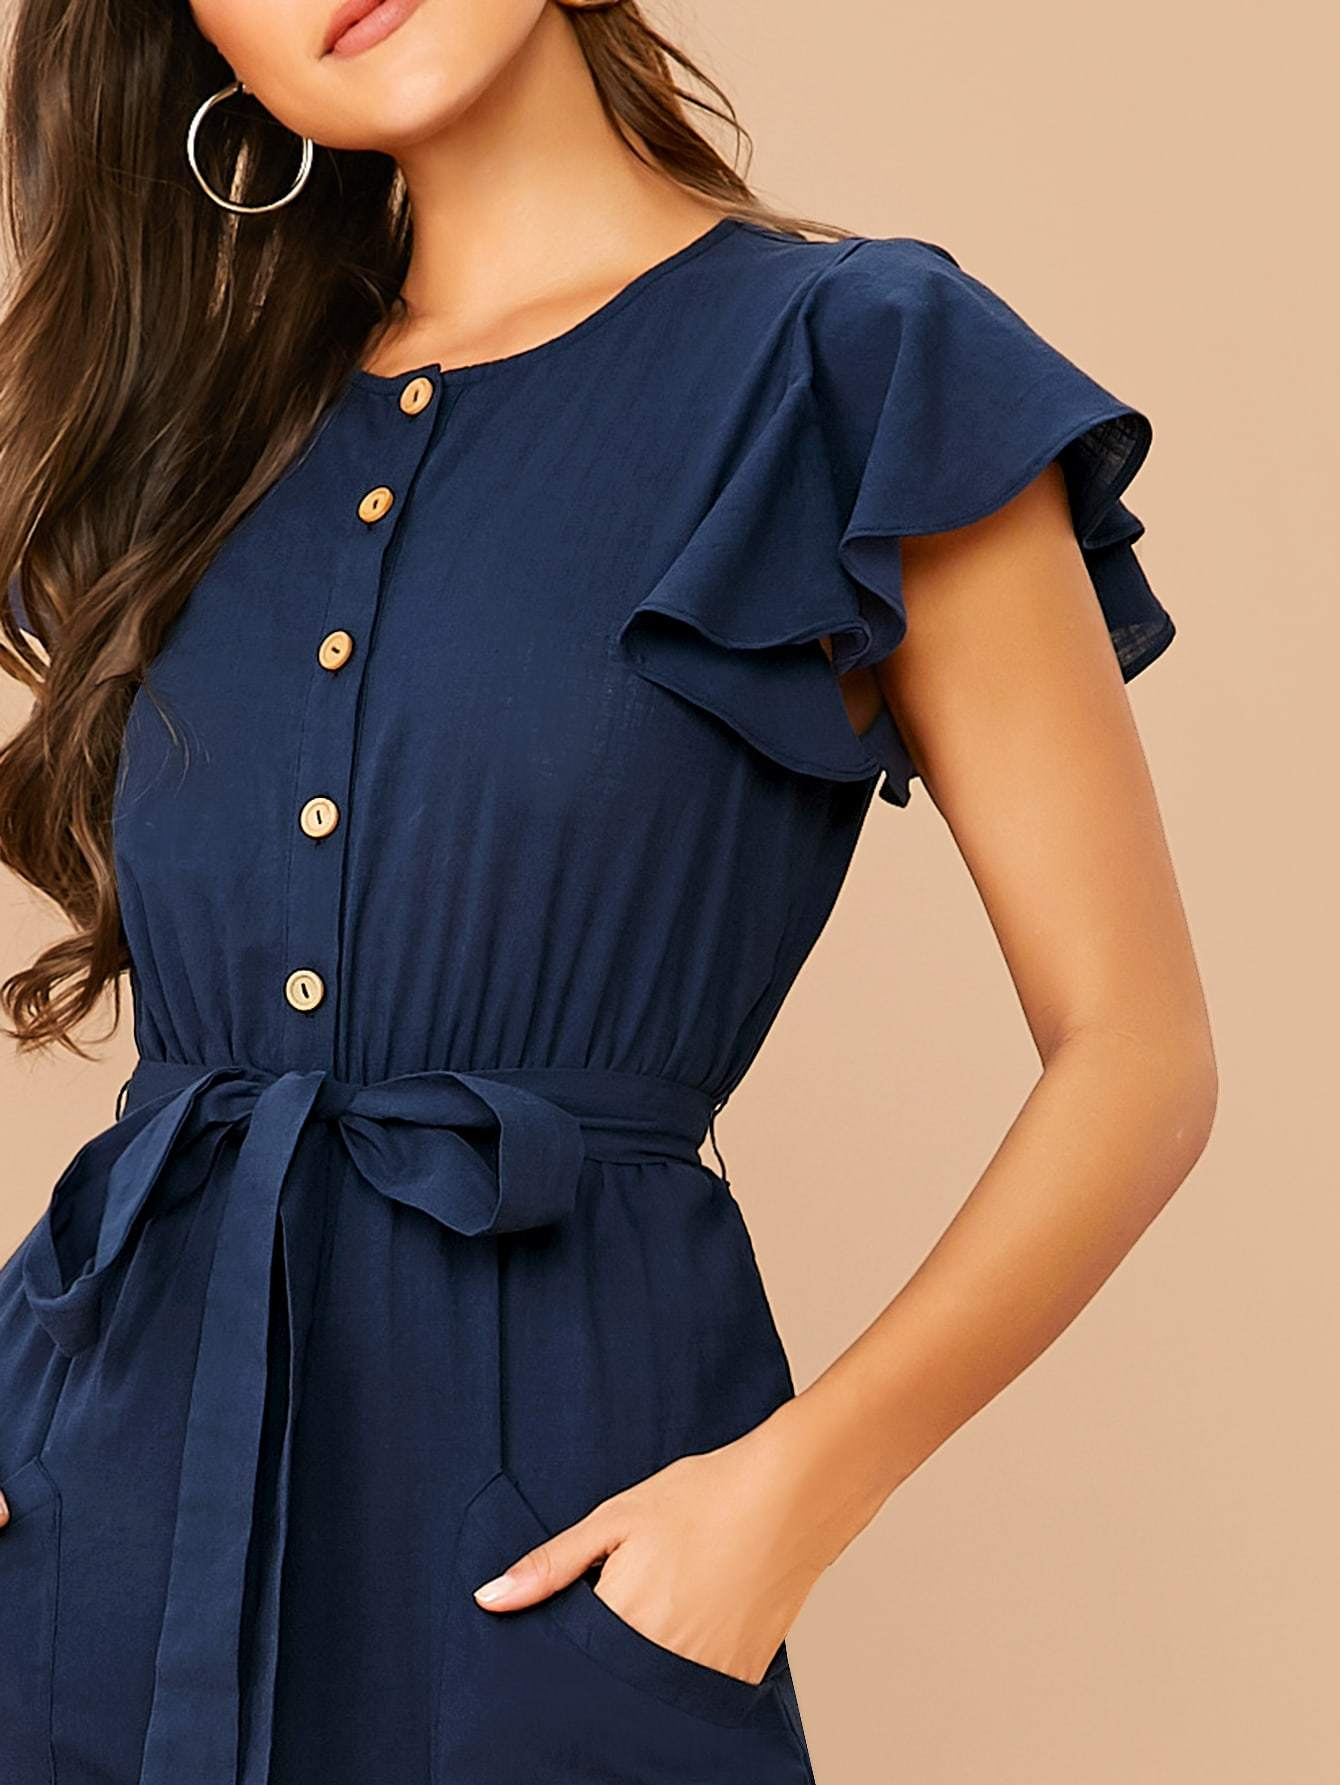 Butterfly Sleeve Belted Shirt Jumpsuit - FLJ CORPORATIONS